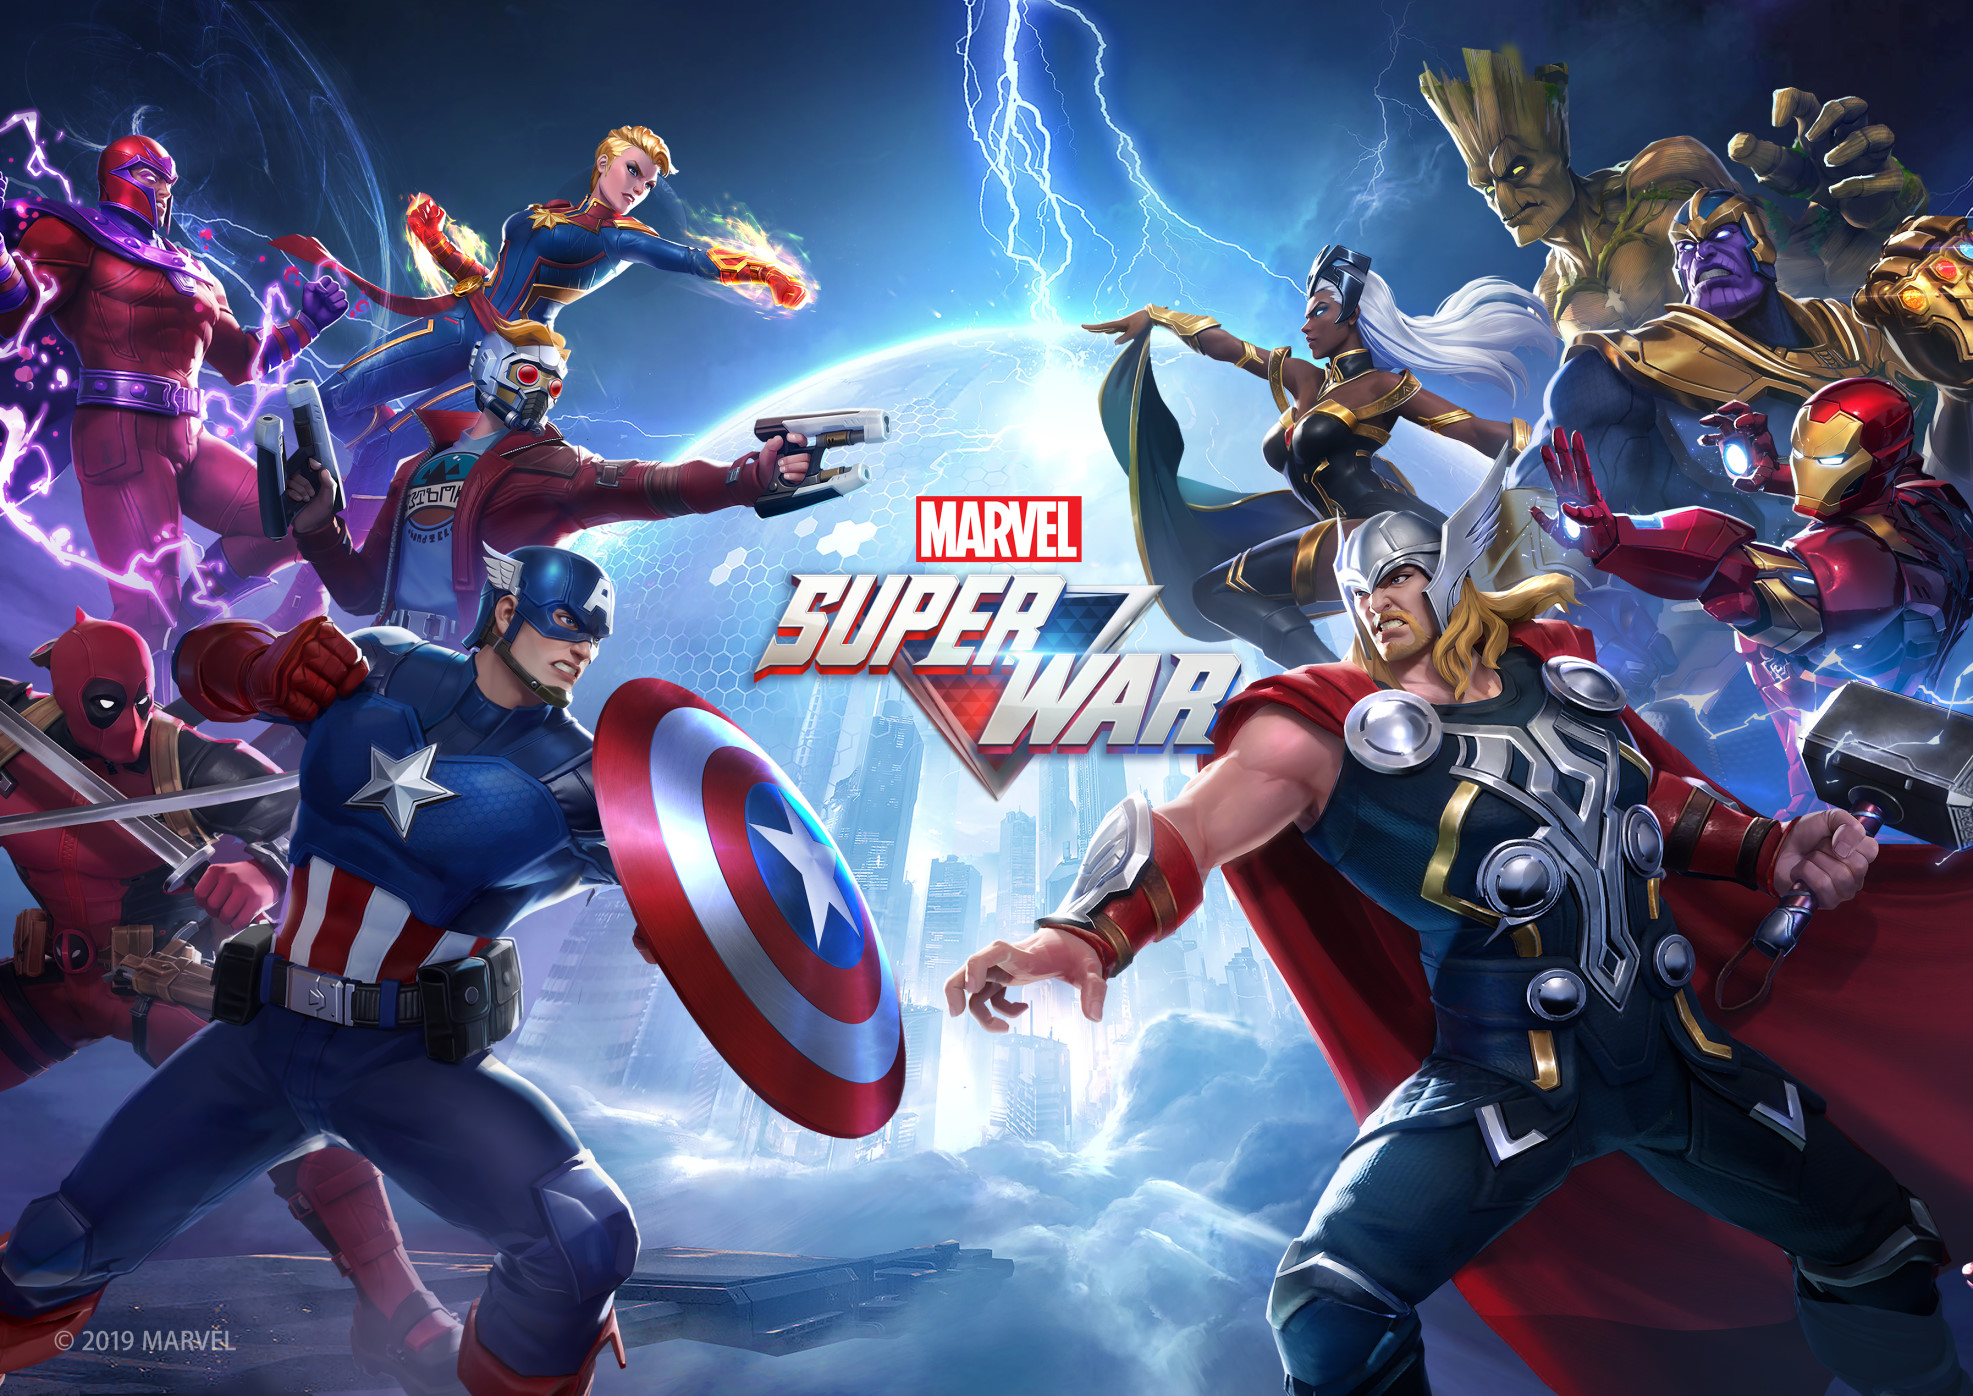 MARVEL Super War Esports Takes Off In Australia